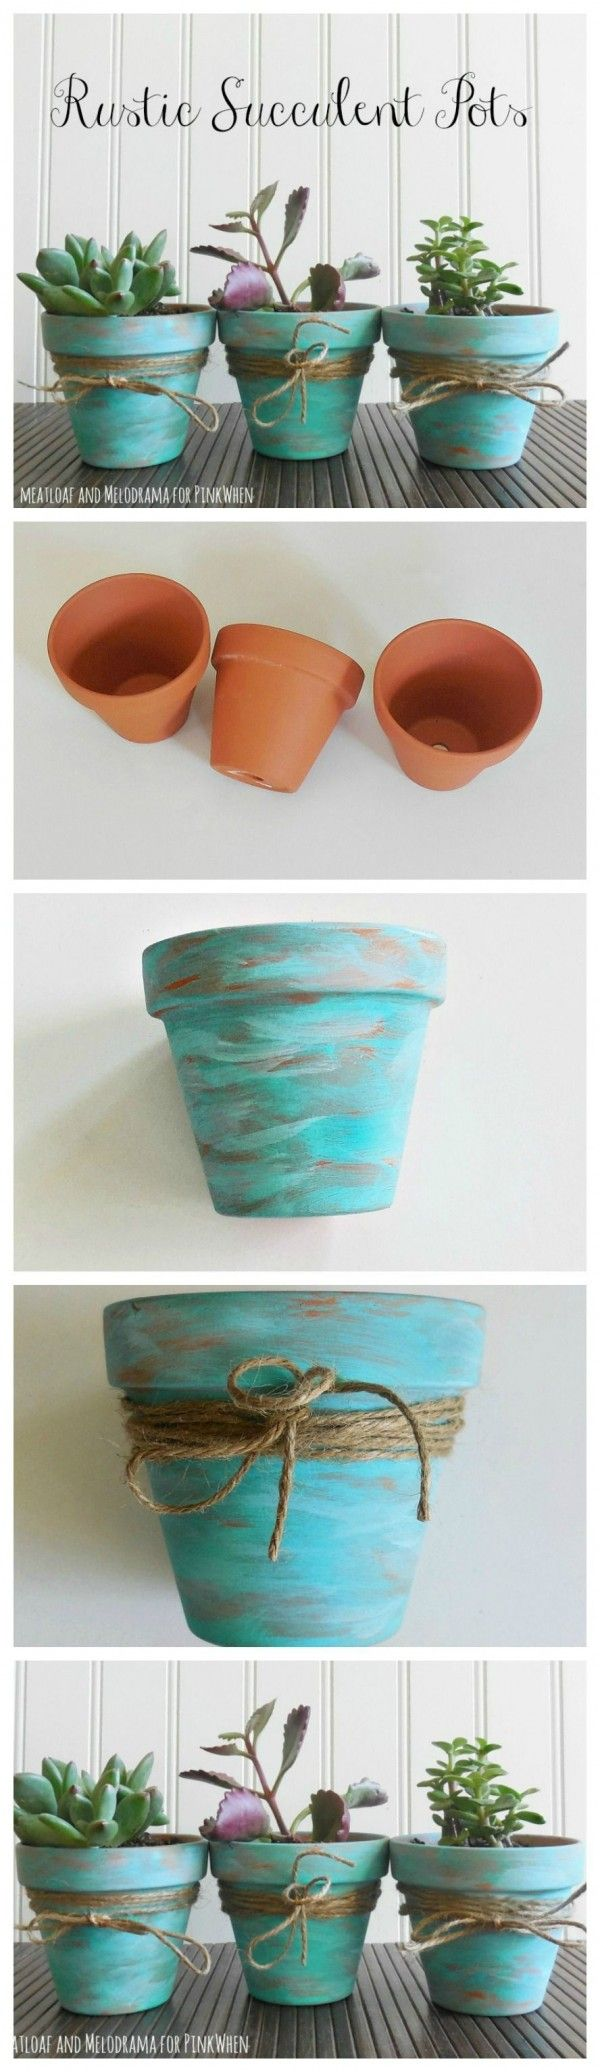 Check out how to make DIY rustic planter pots @istandarddesign